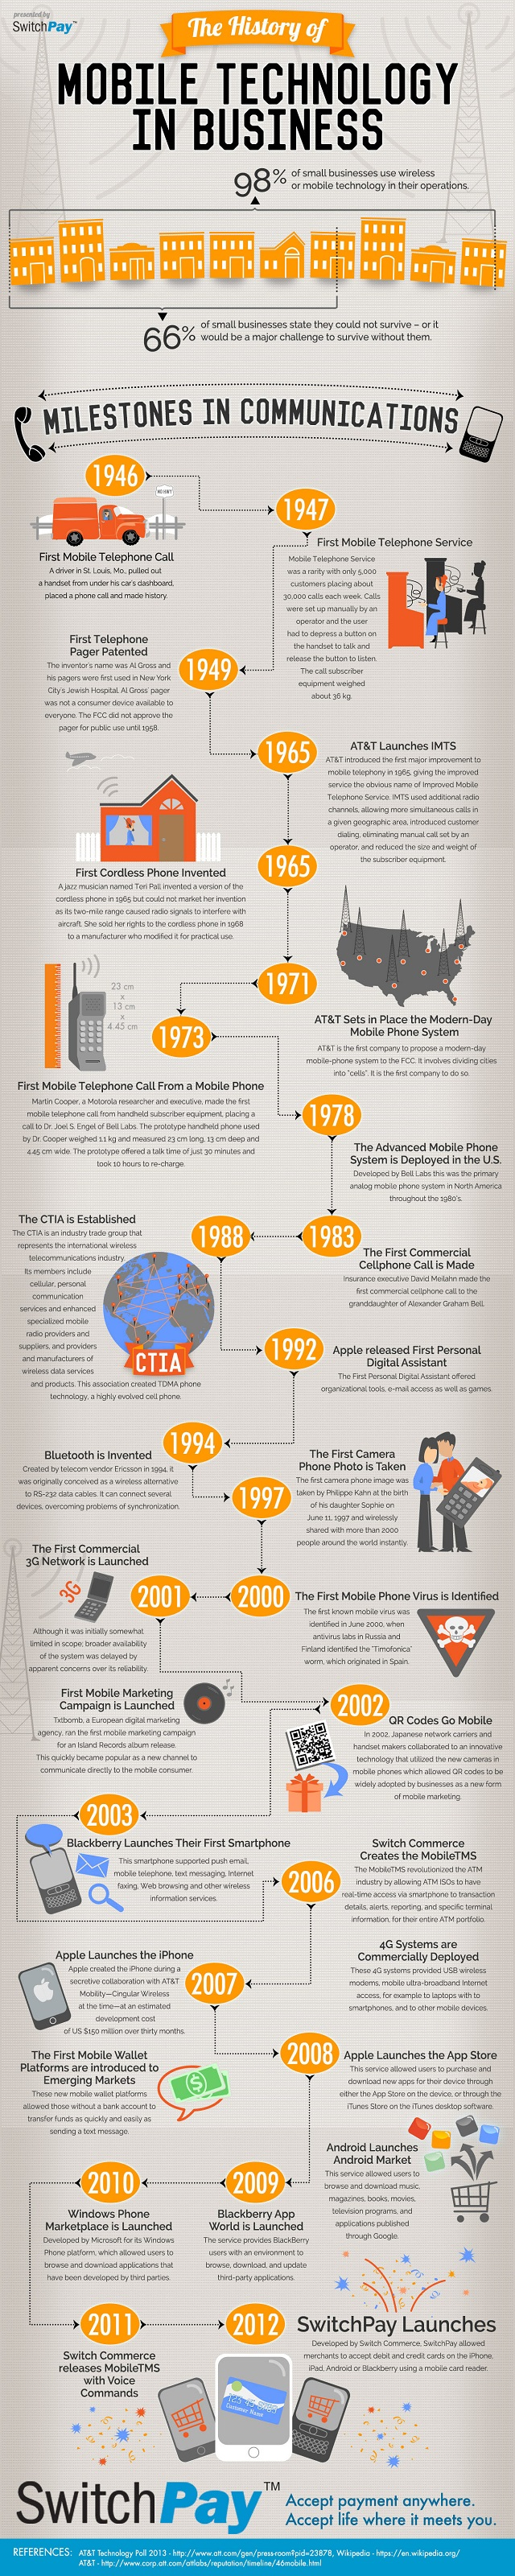 the-history-of-mobile-technology-in-business_521cf1b605c84